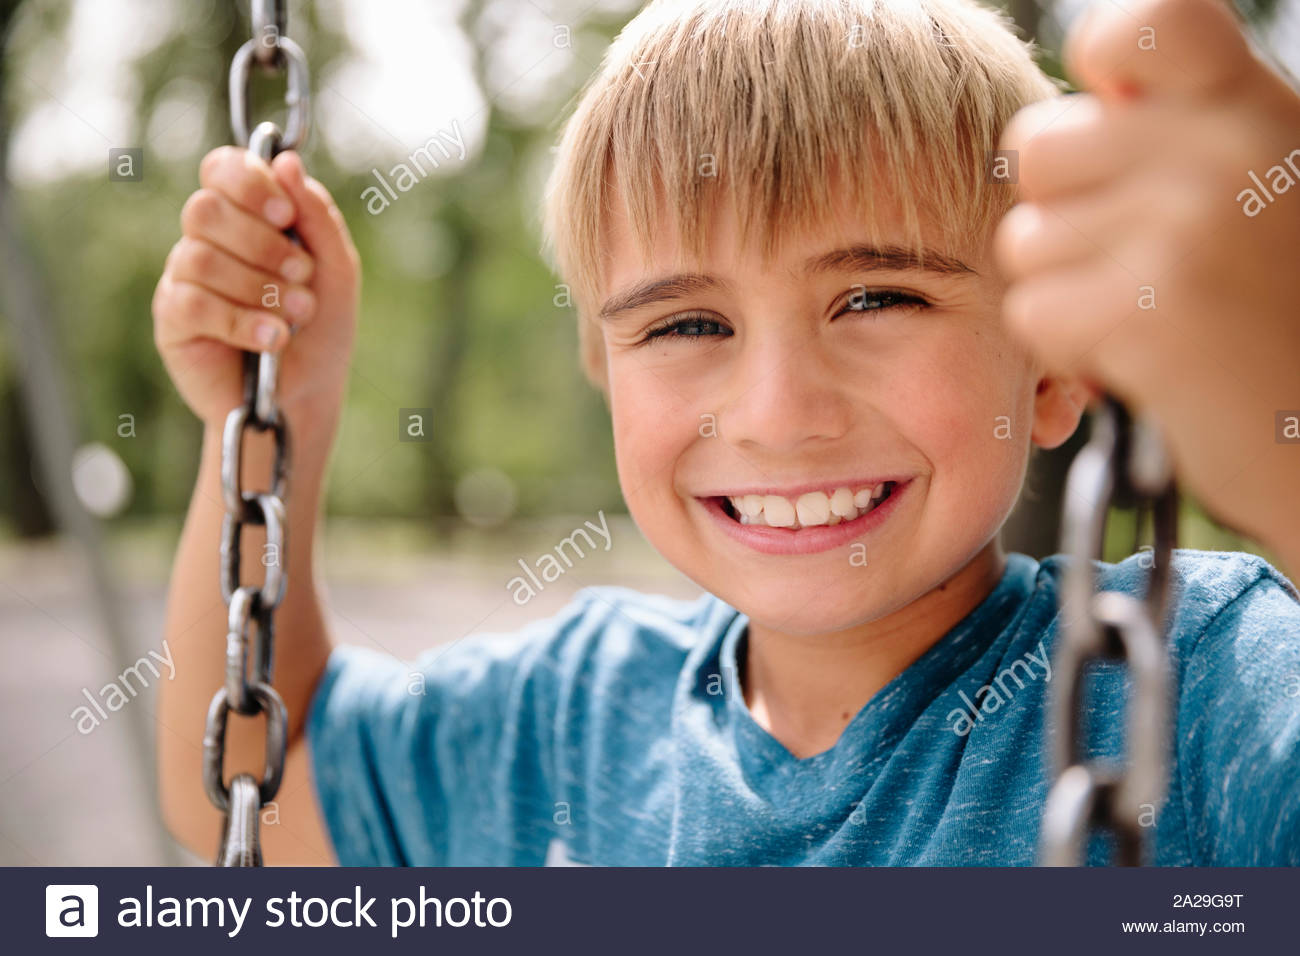 Portrait of young boy sitting on swing smiling towards camera Stock Photo